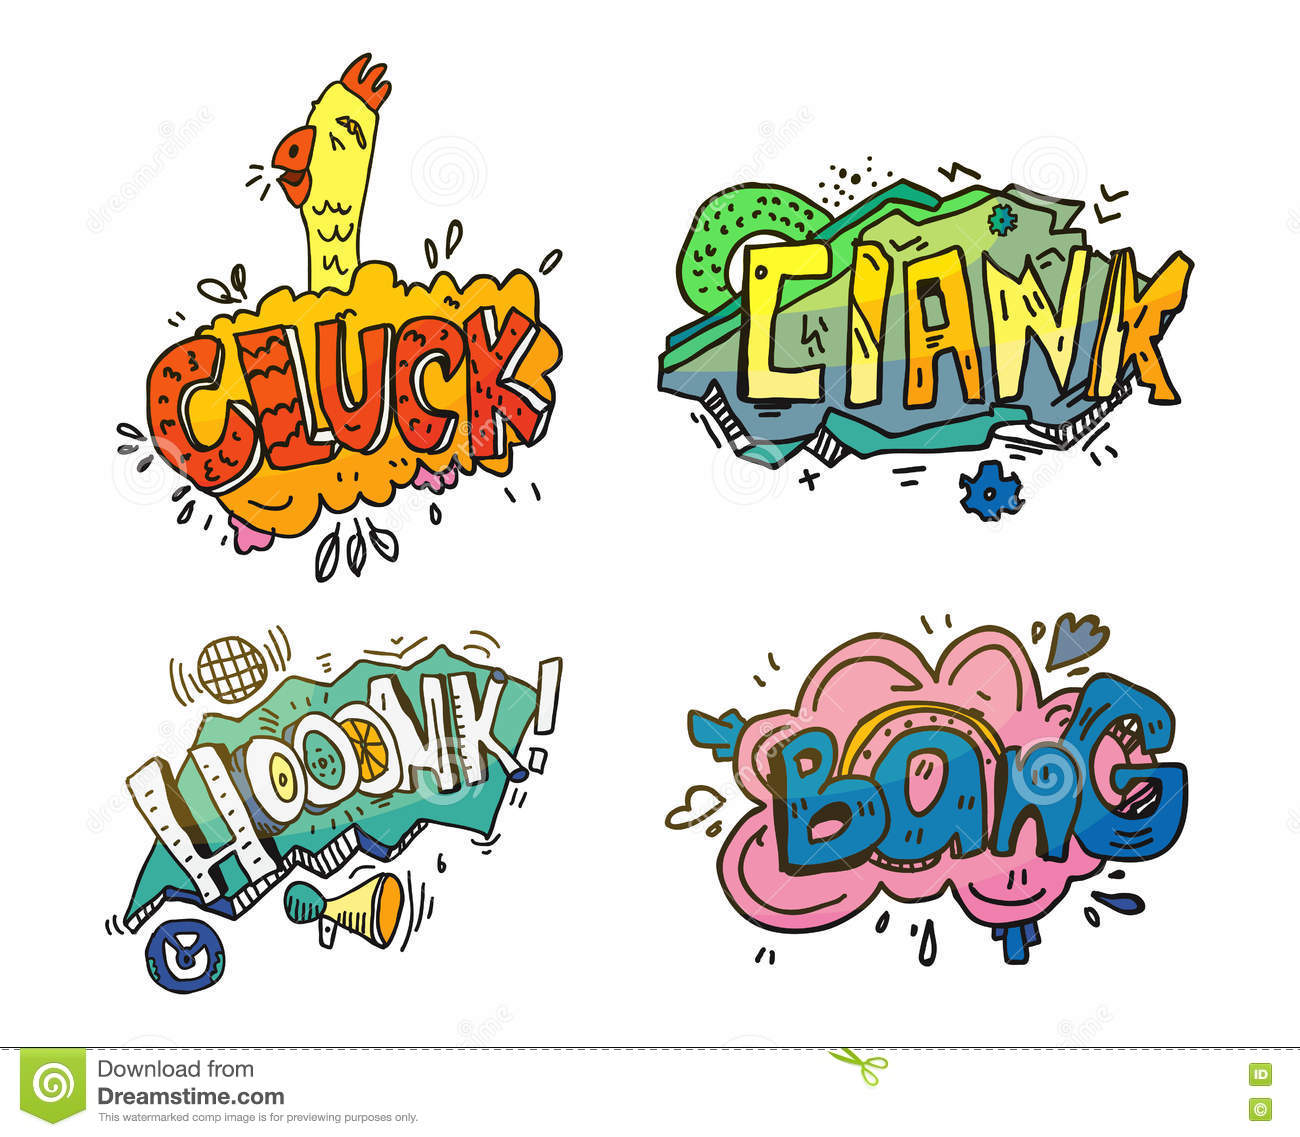 Bubbles of sounds for comix or cartoon, comic book or magazine. Onomatopoeia like clank for mechanical crash or crush